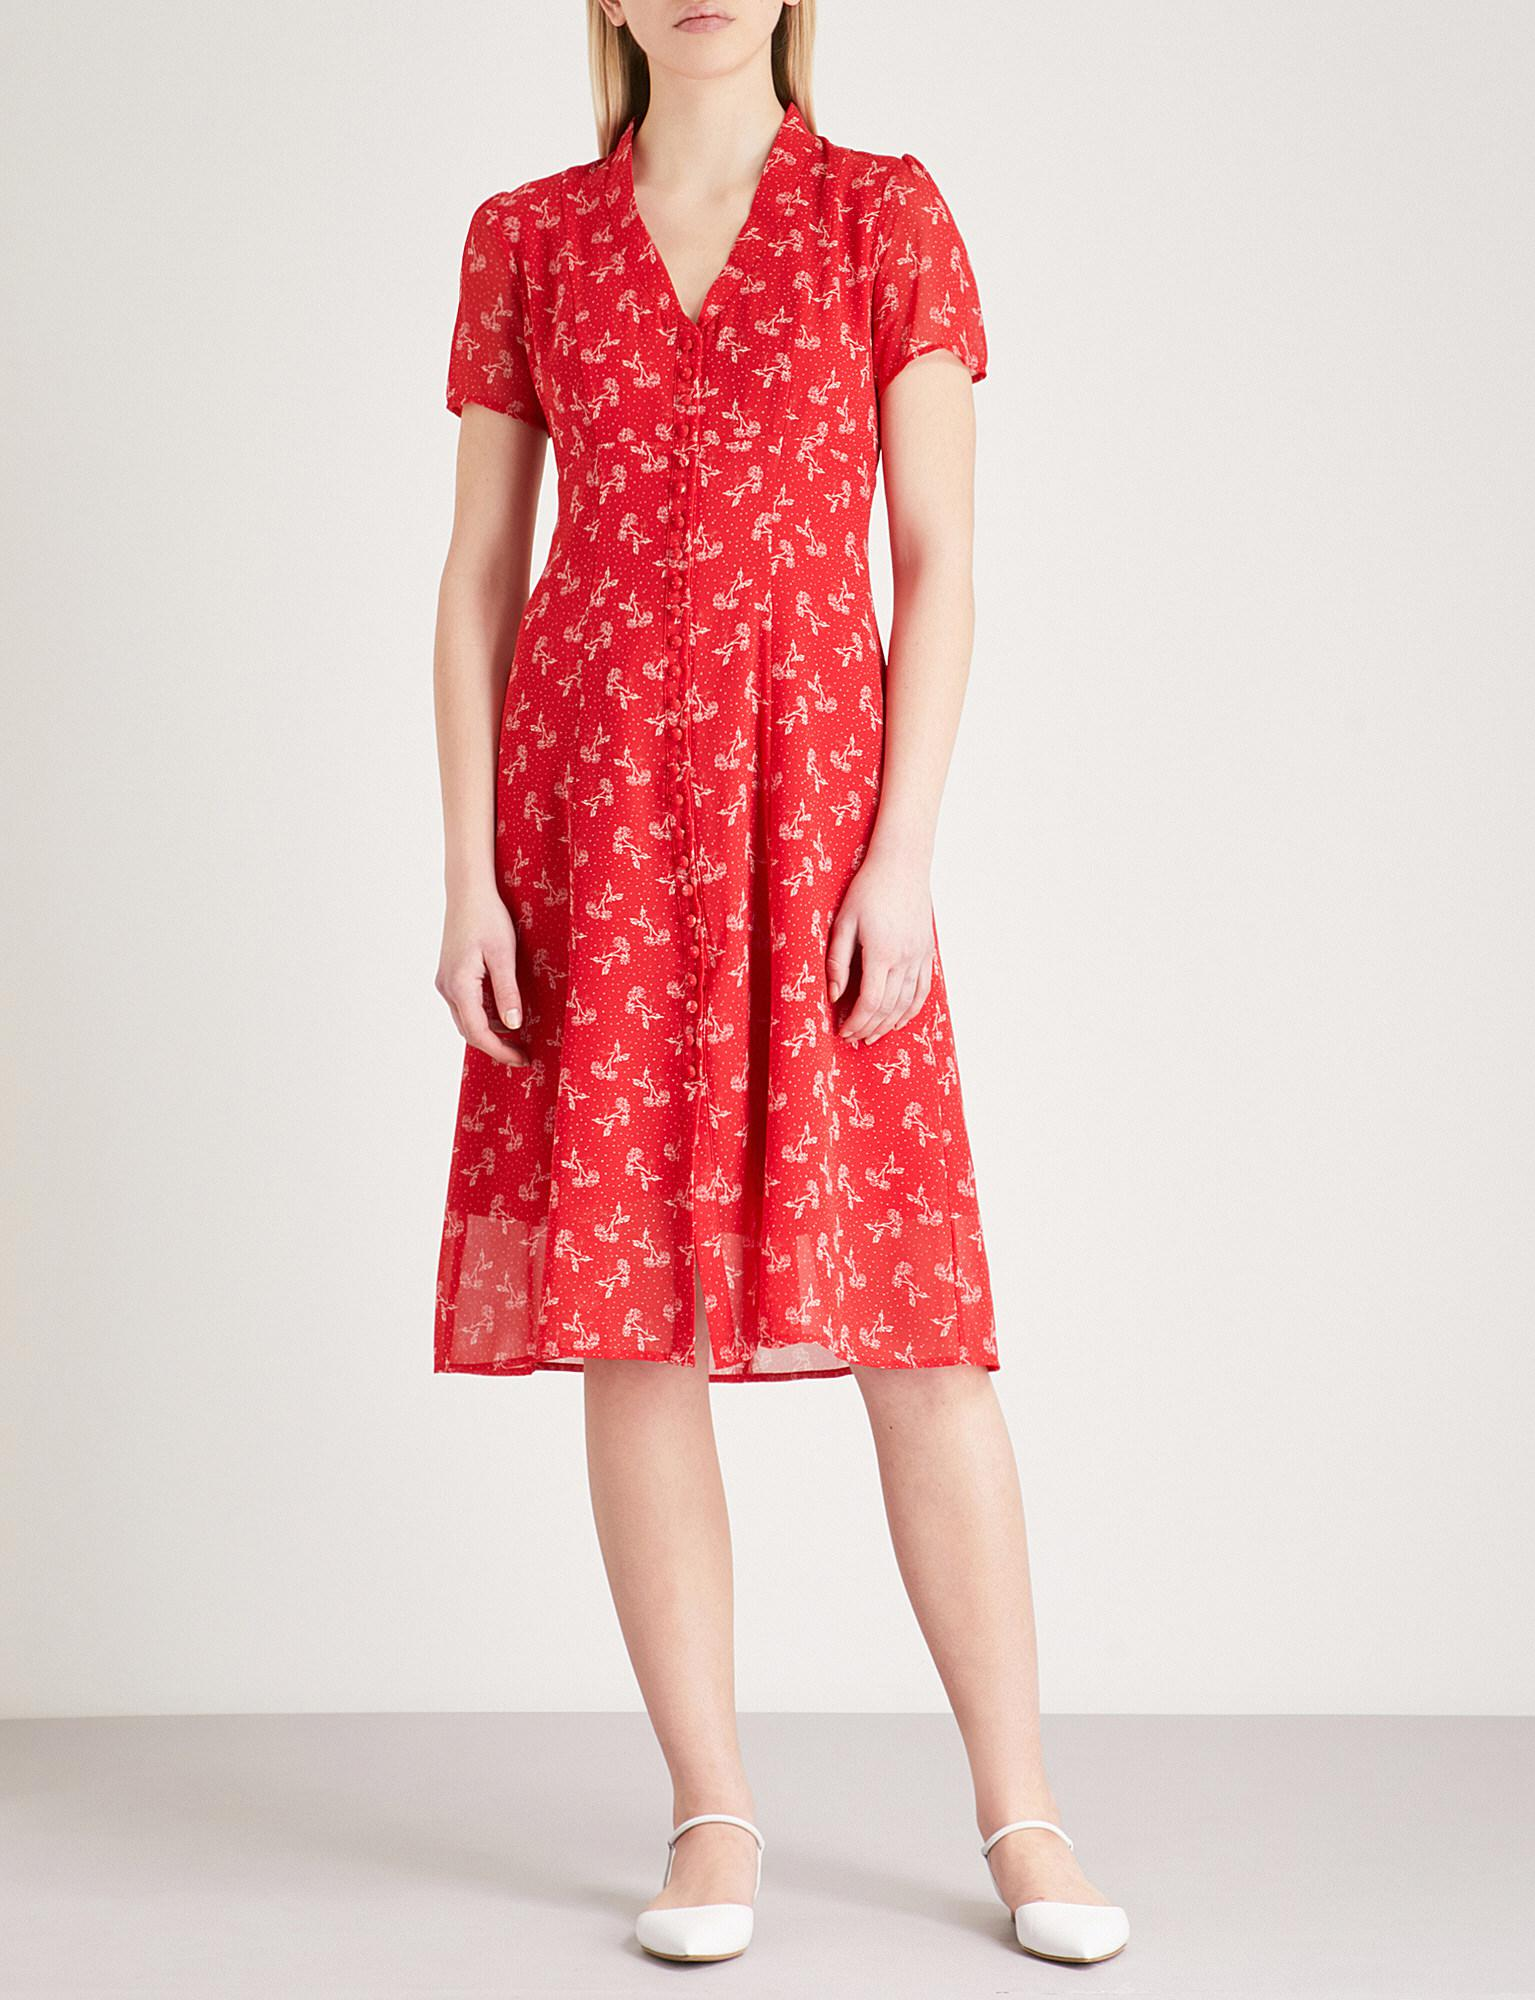 2a2b709fa0 Gallery. Previously sold at: Selfridges · Women's Floral Dresses